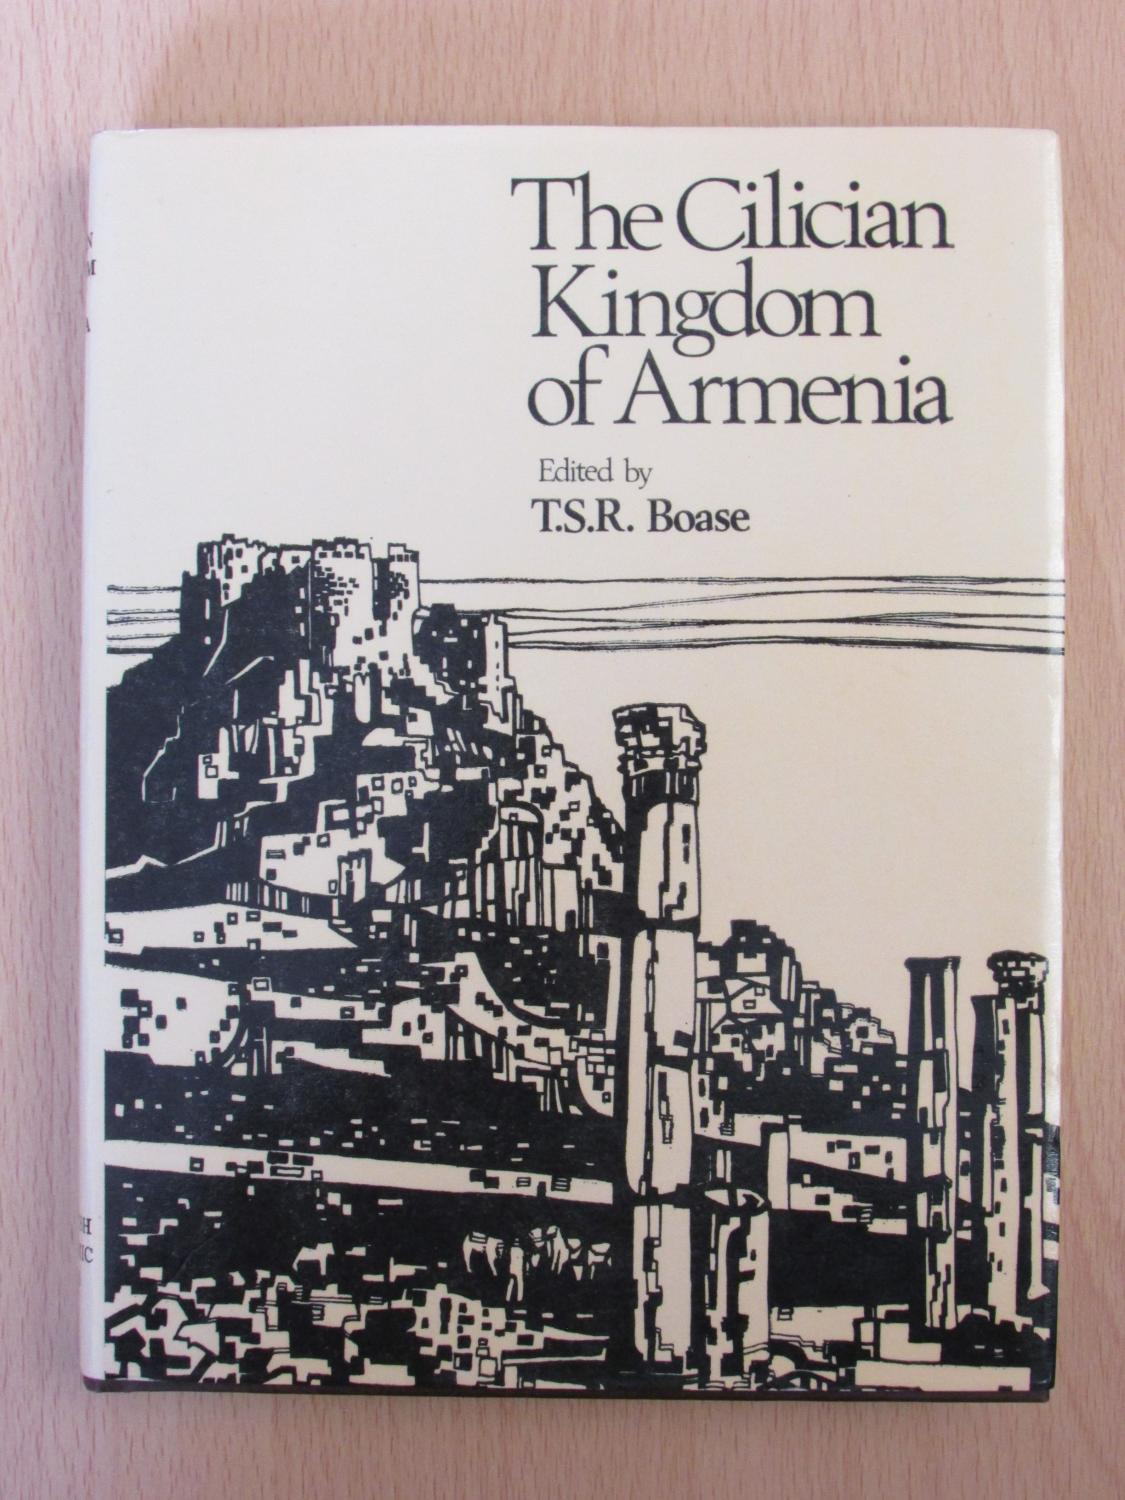 The Cilician Kingdom of Armenia - edited by T.S.R. BOASE